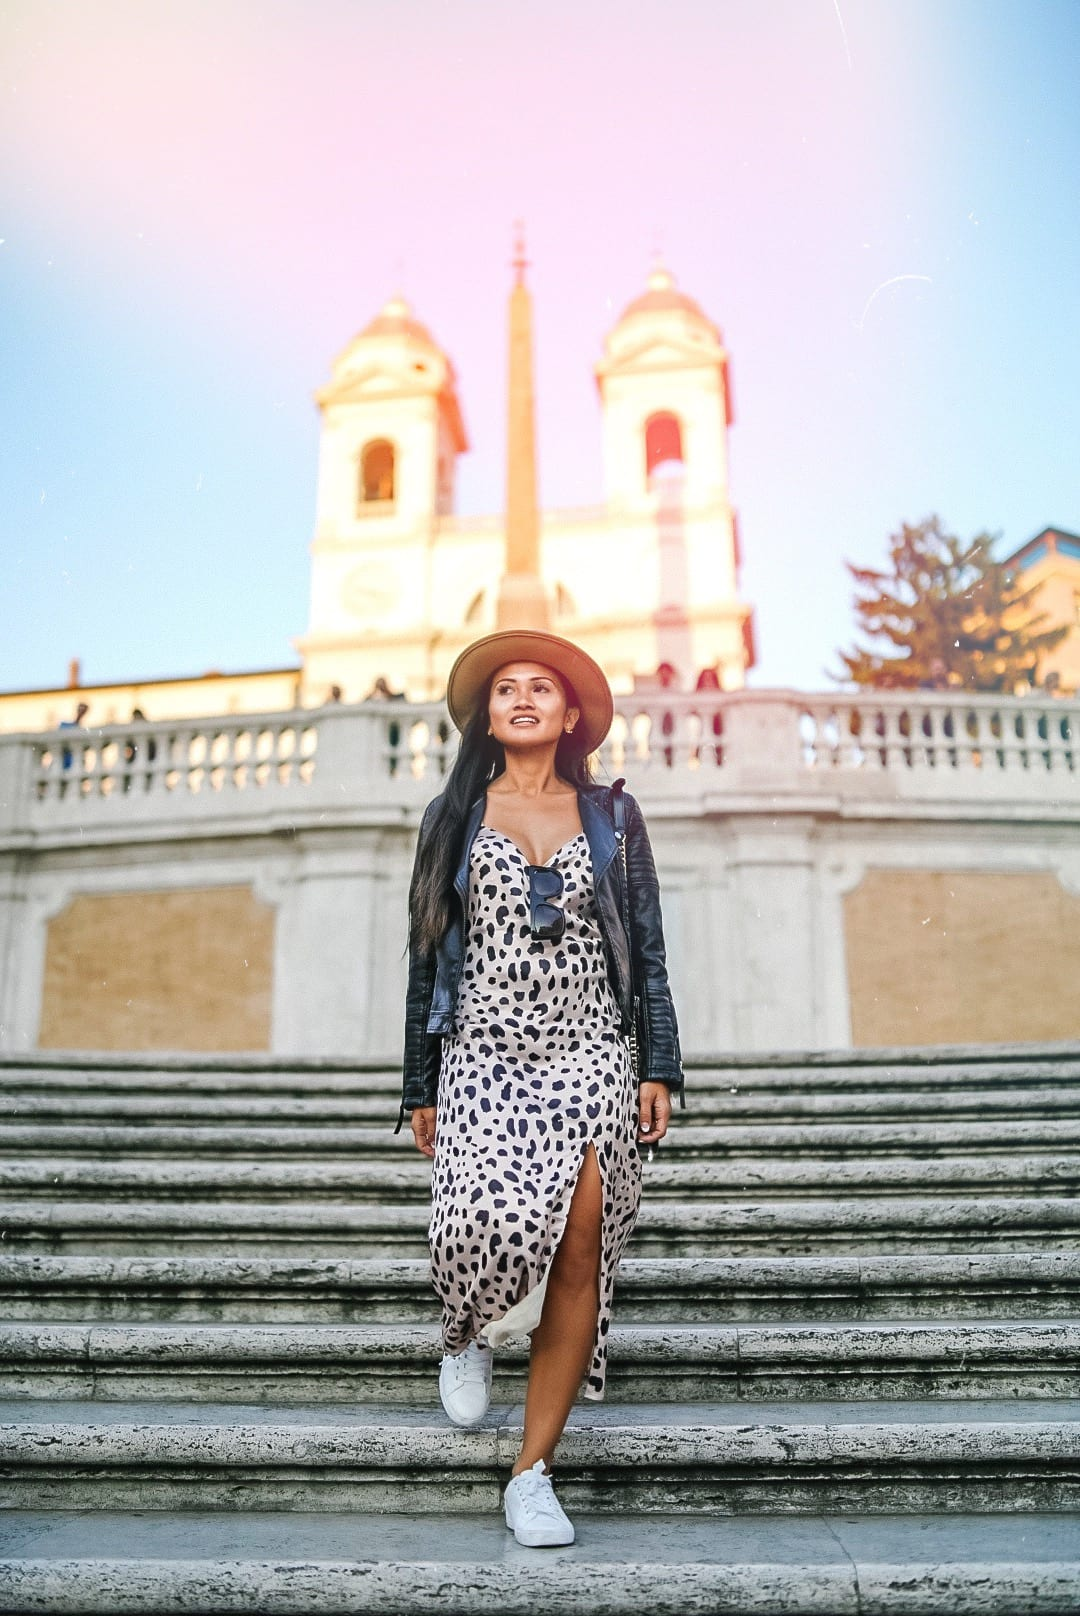 Spanish steps at sunset